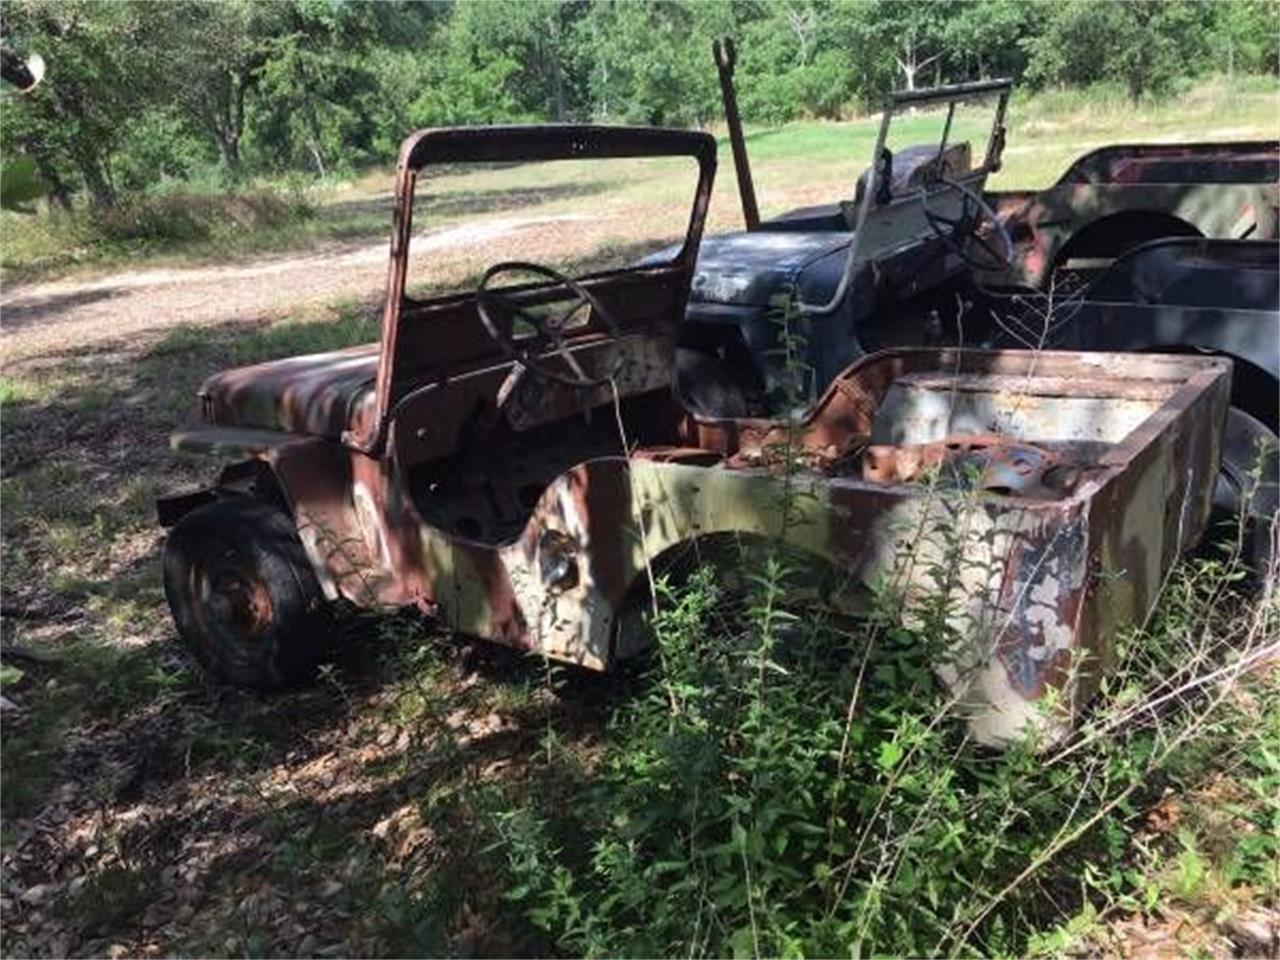 1947 Willys Jeep for sale in Cadillac, MI – photo 3